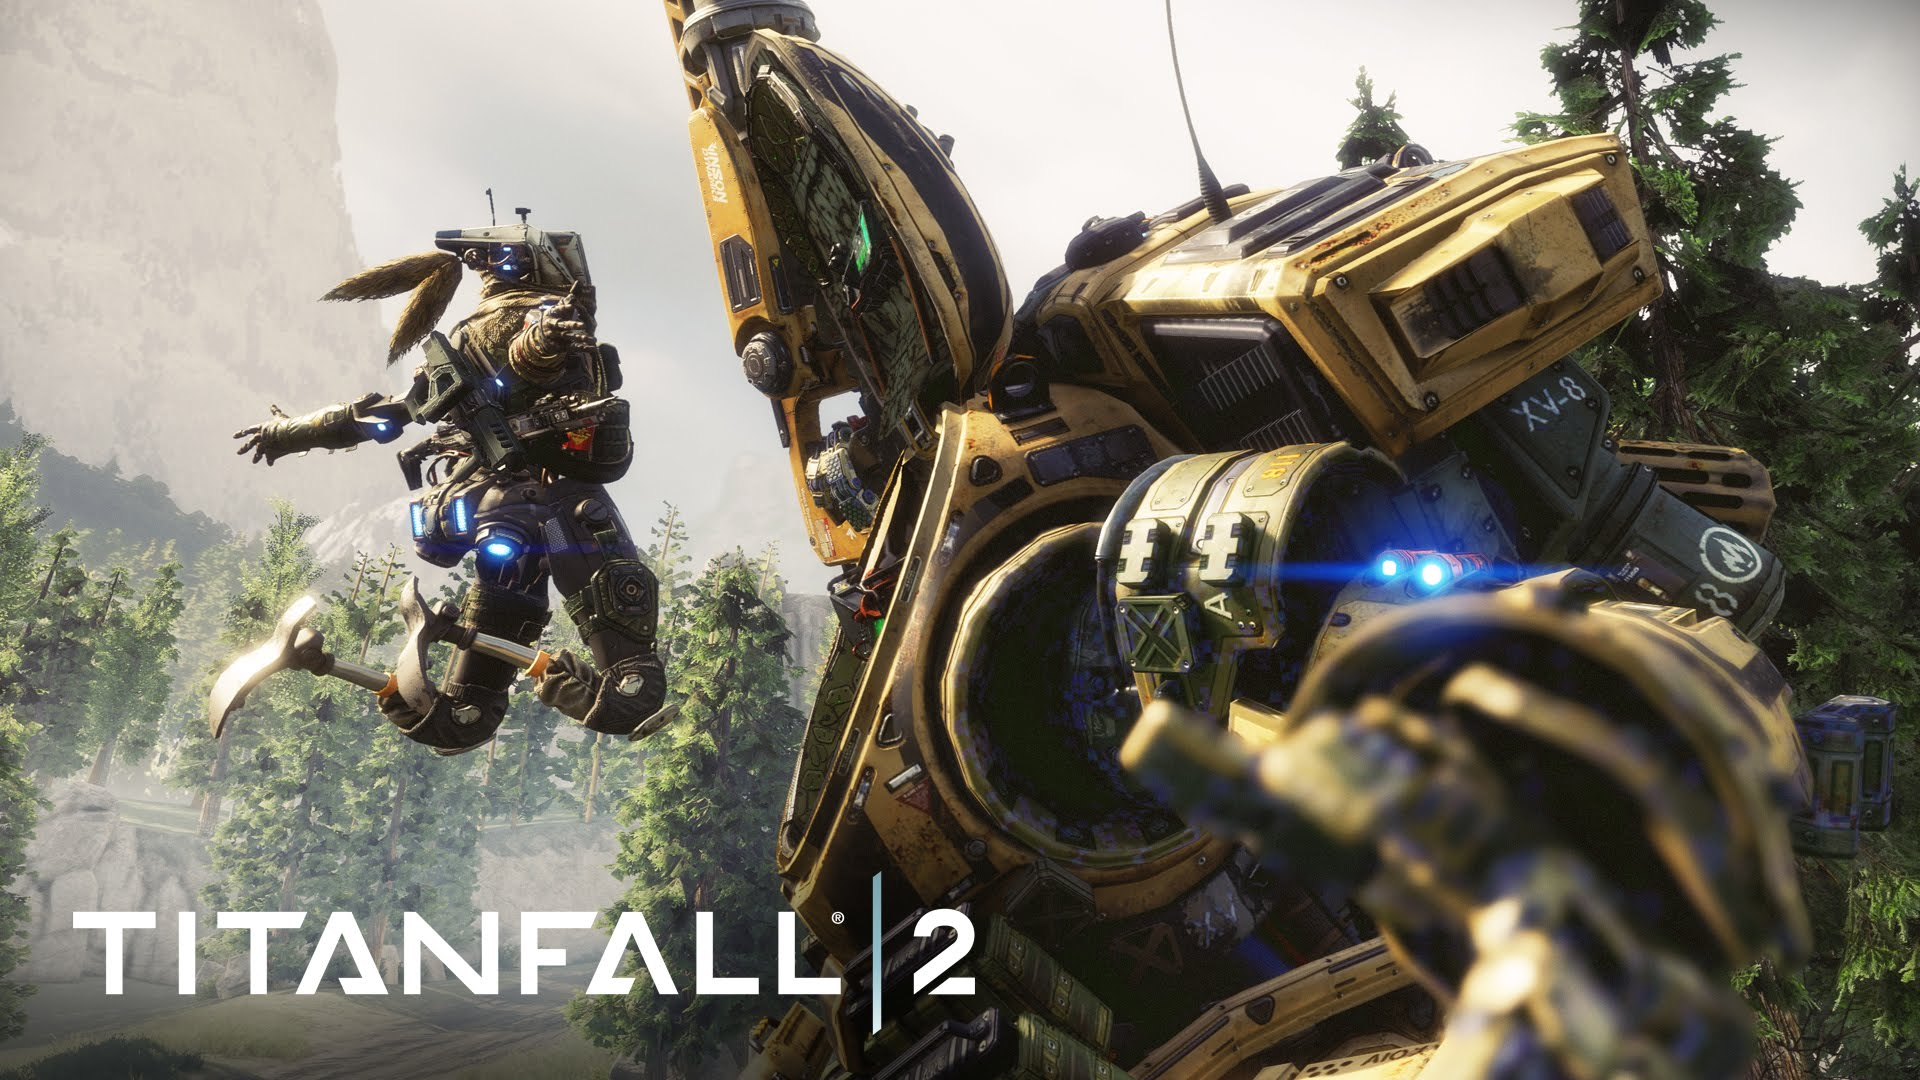 Titanfall 2 gets private solo play for multiplayer